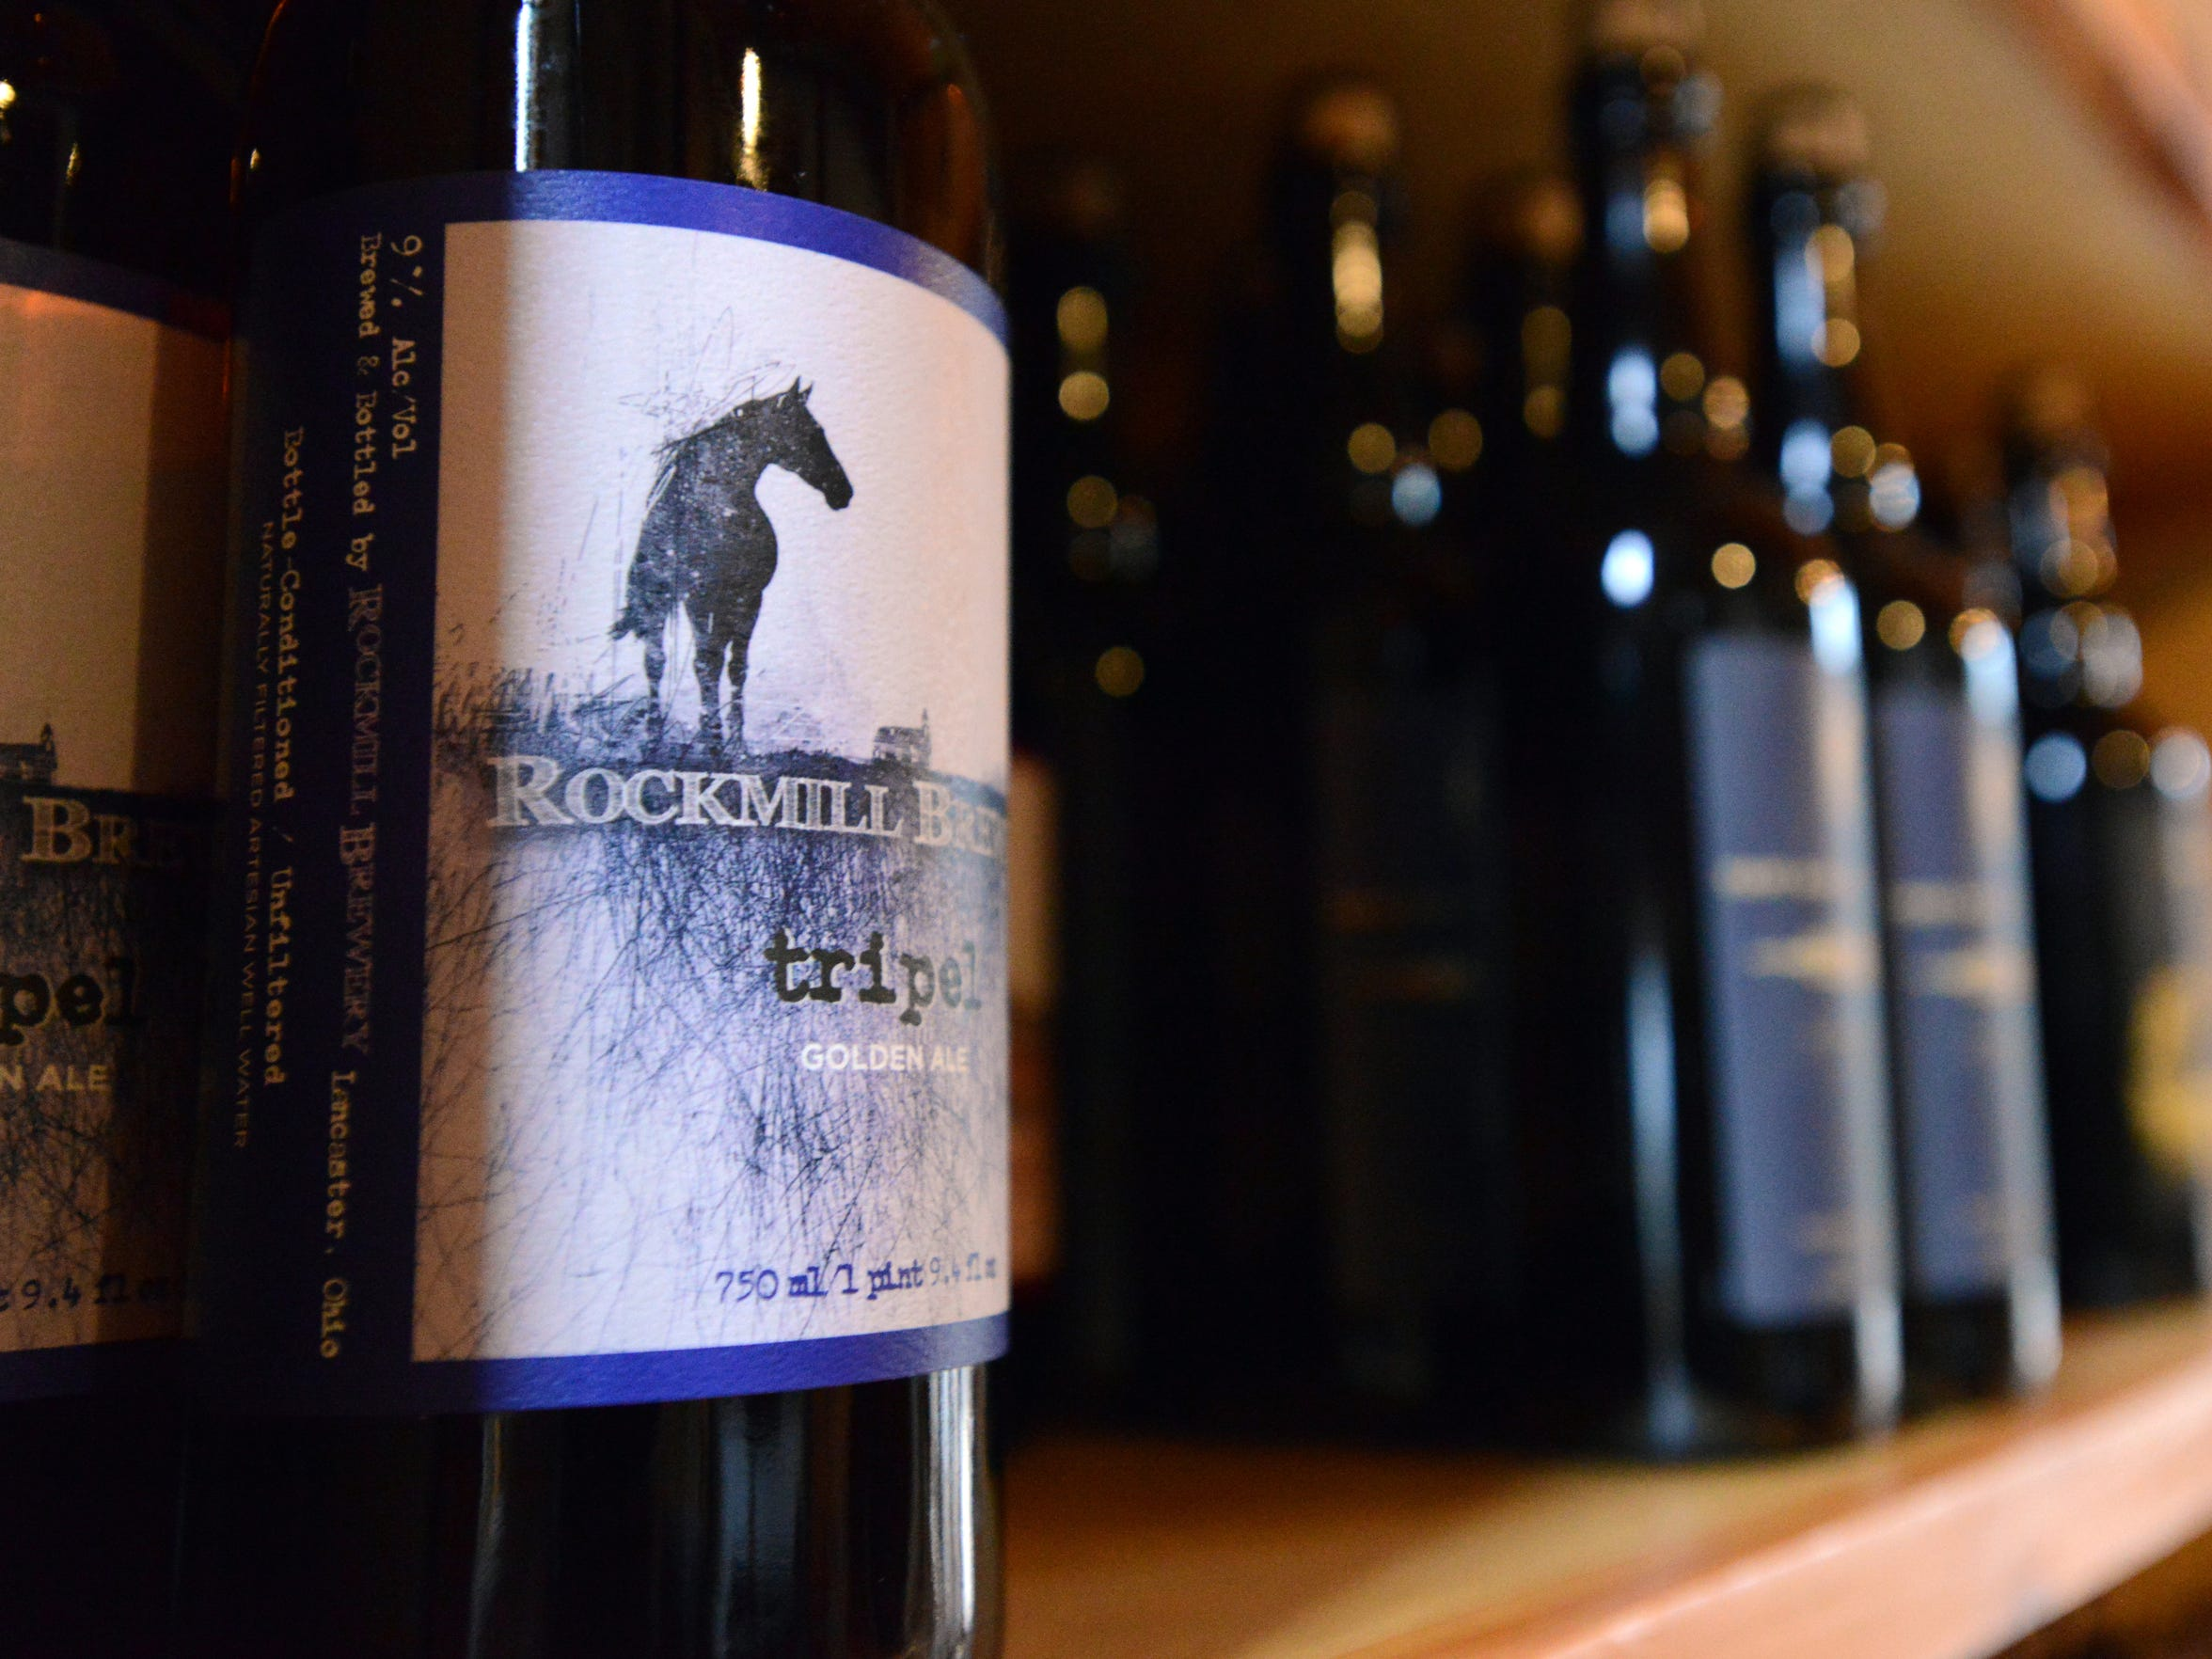 Rockmill Brewery started production in 2008 on a former